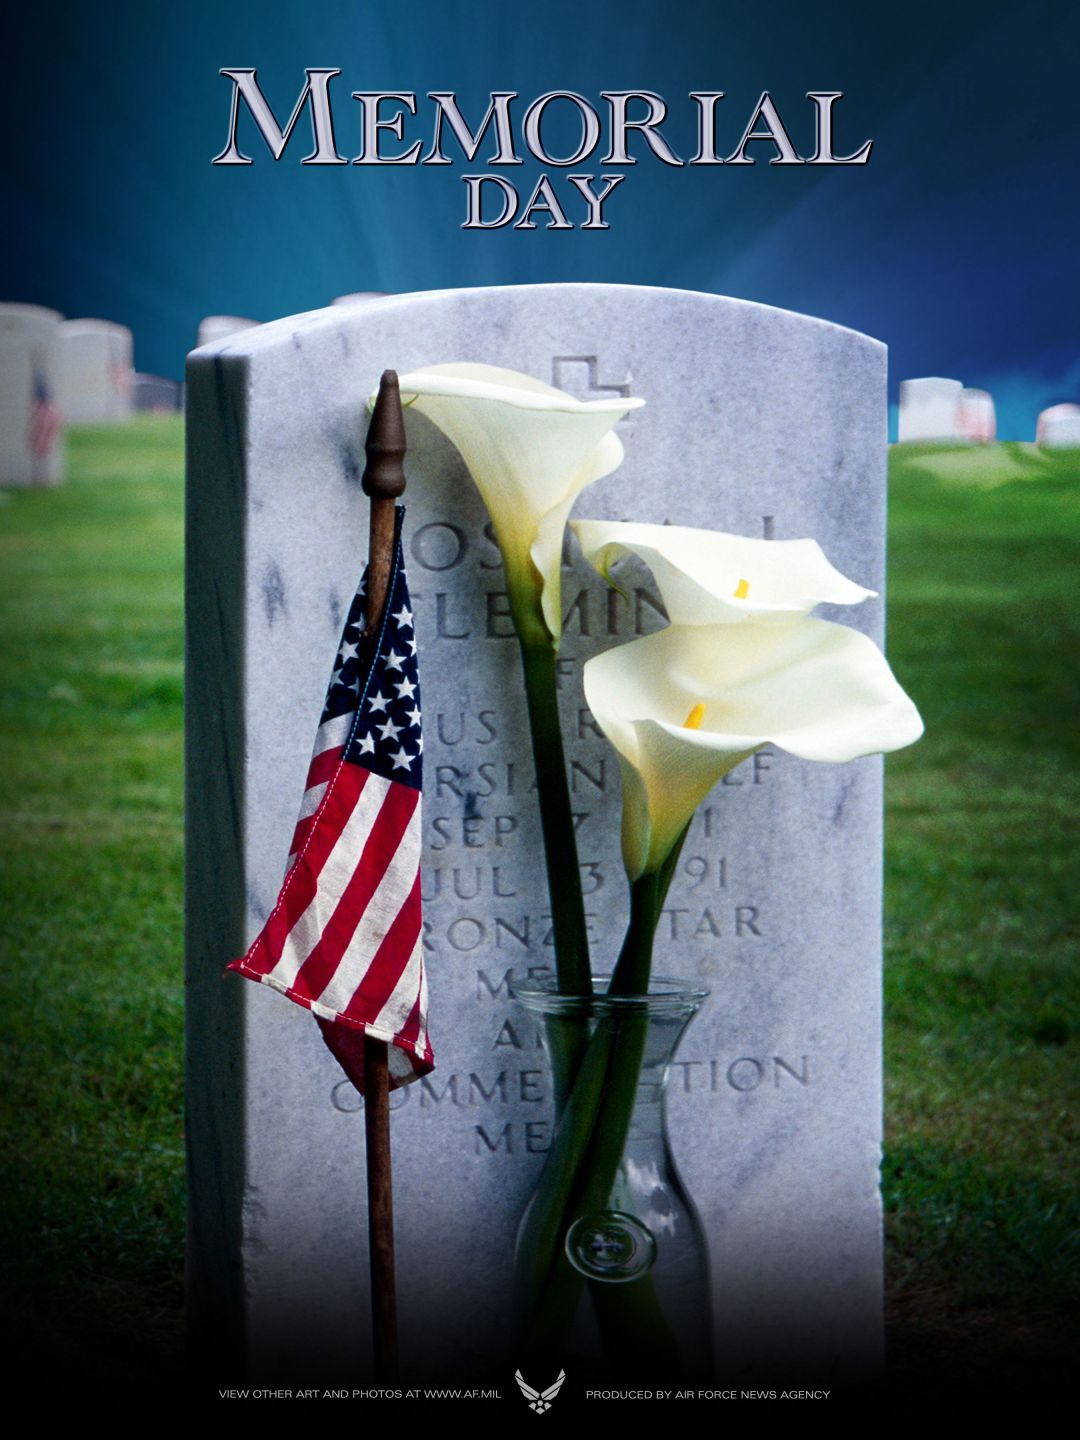 [50] Memorial Day   Android iPhone Desktop HD Backgrounds 1080x1440